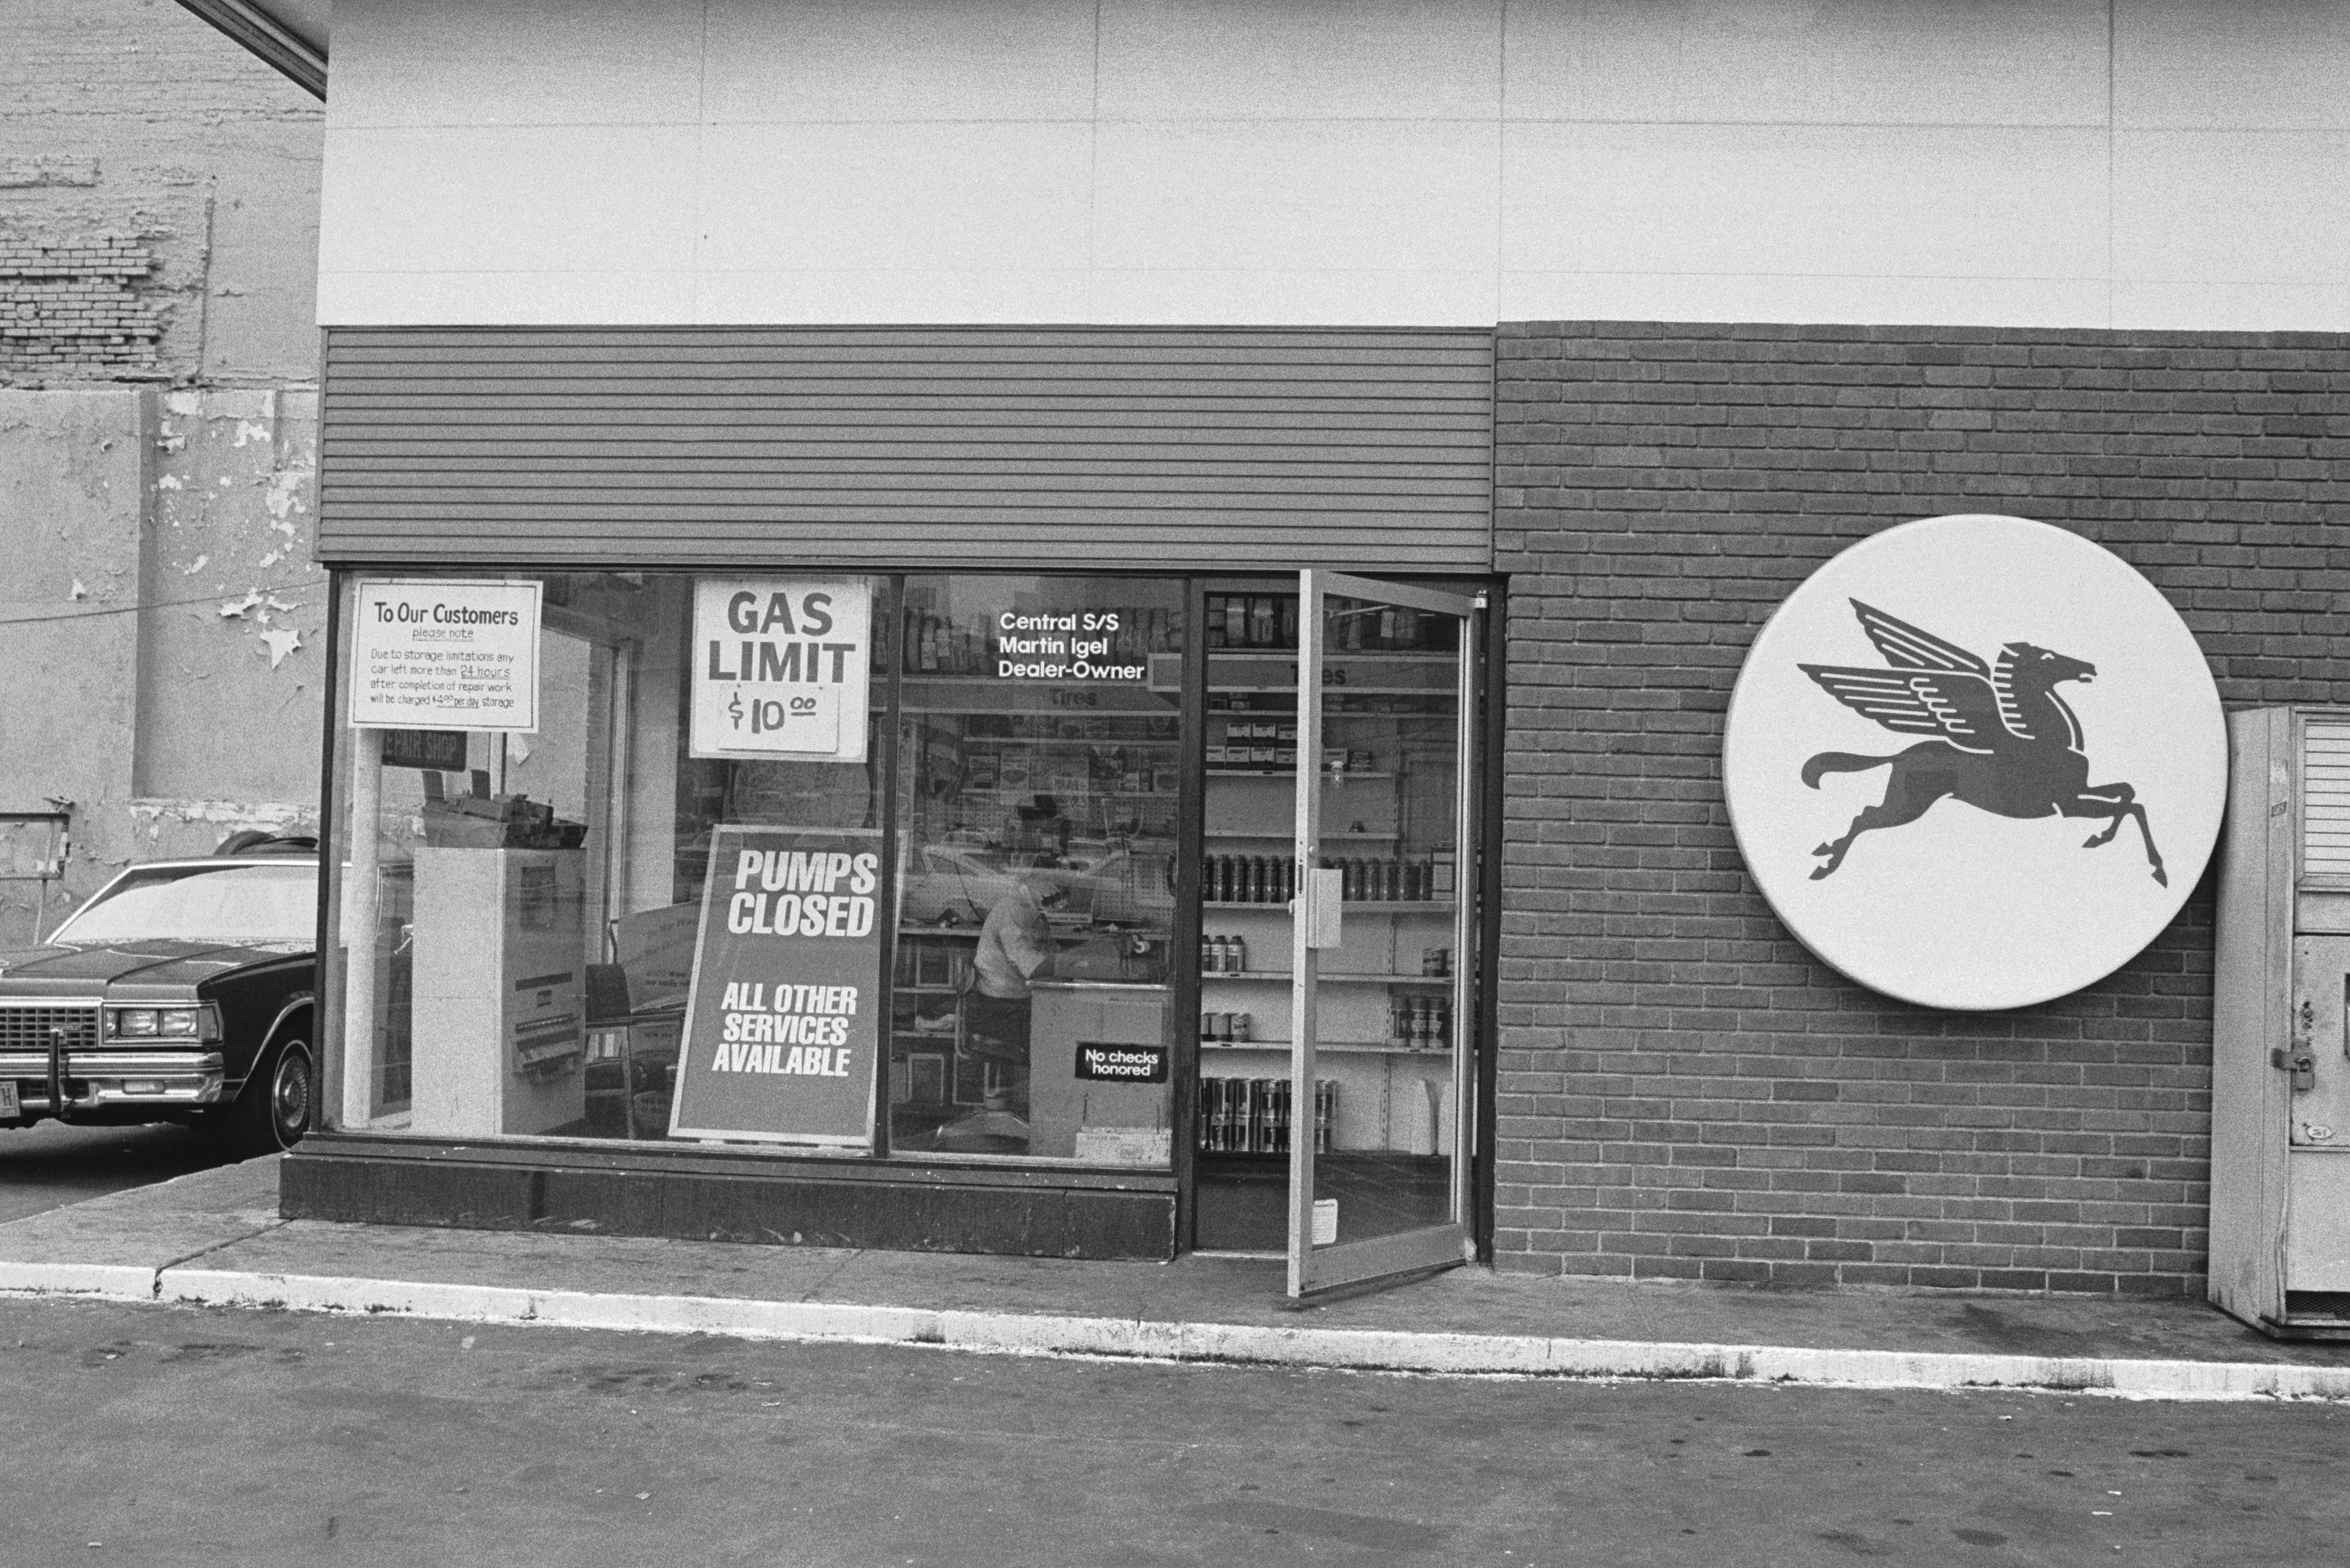 A 'Pumps Closed' sign in the window of a petrol station on 42nd Street and 11th Avenue, New York during a fuel shortage, 19th June 1979. The Mobil Pegasus logo is visible on the right.